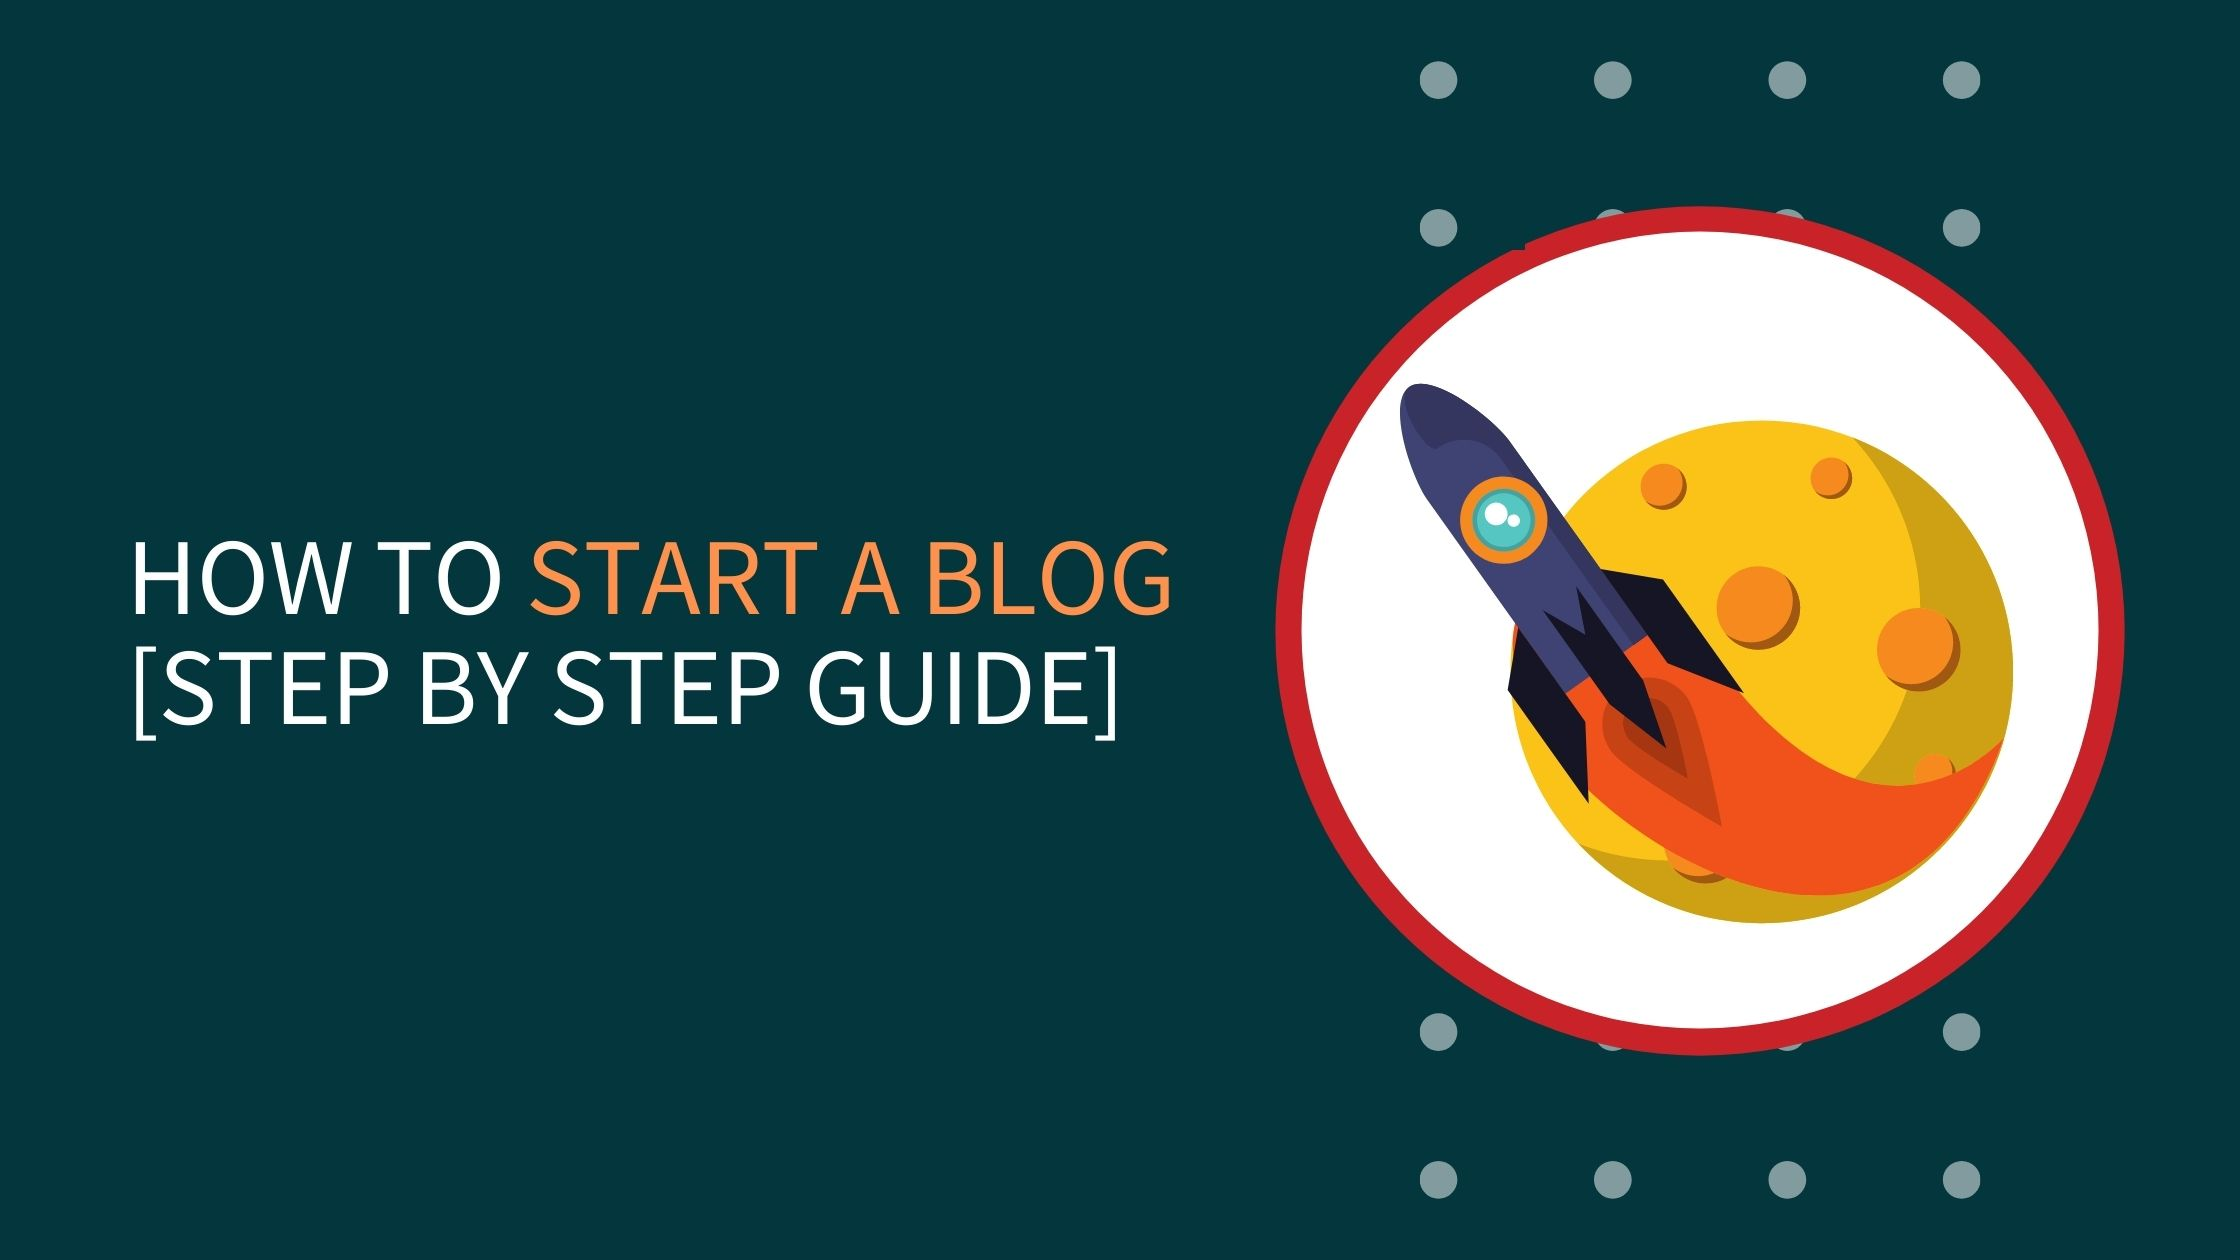 How To Start A Blog For Profit In 2020 [Step By Step Guide]